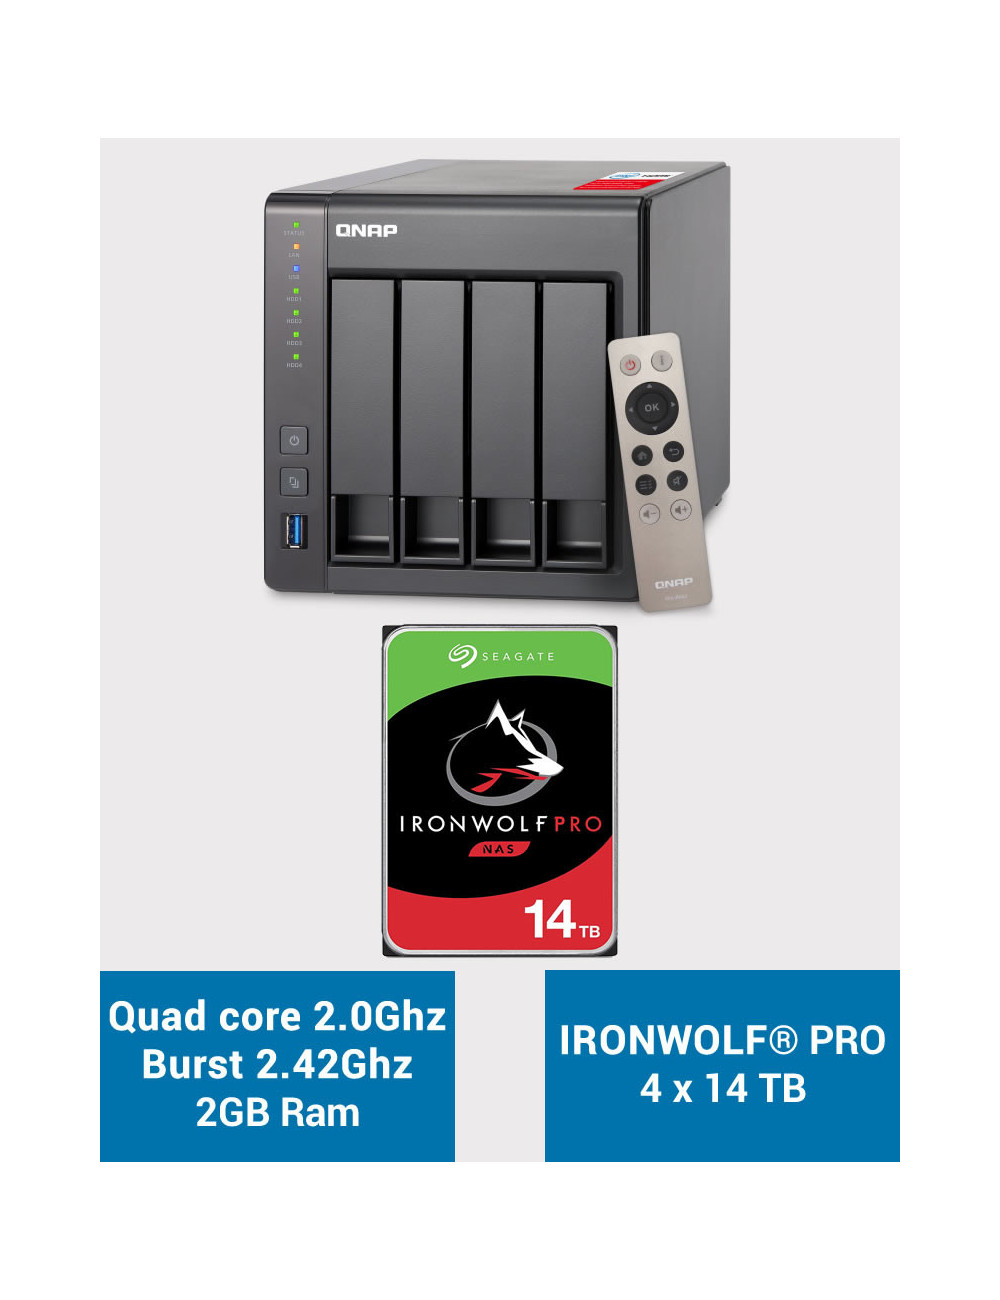 QNAP TS-451+ 2Go Serveur NAS IRONWOLF PRO 56To (4x14To)